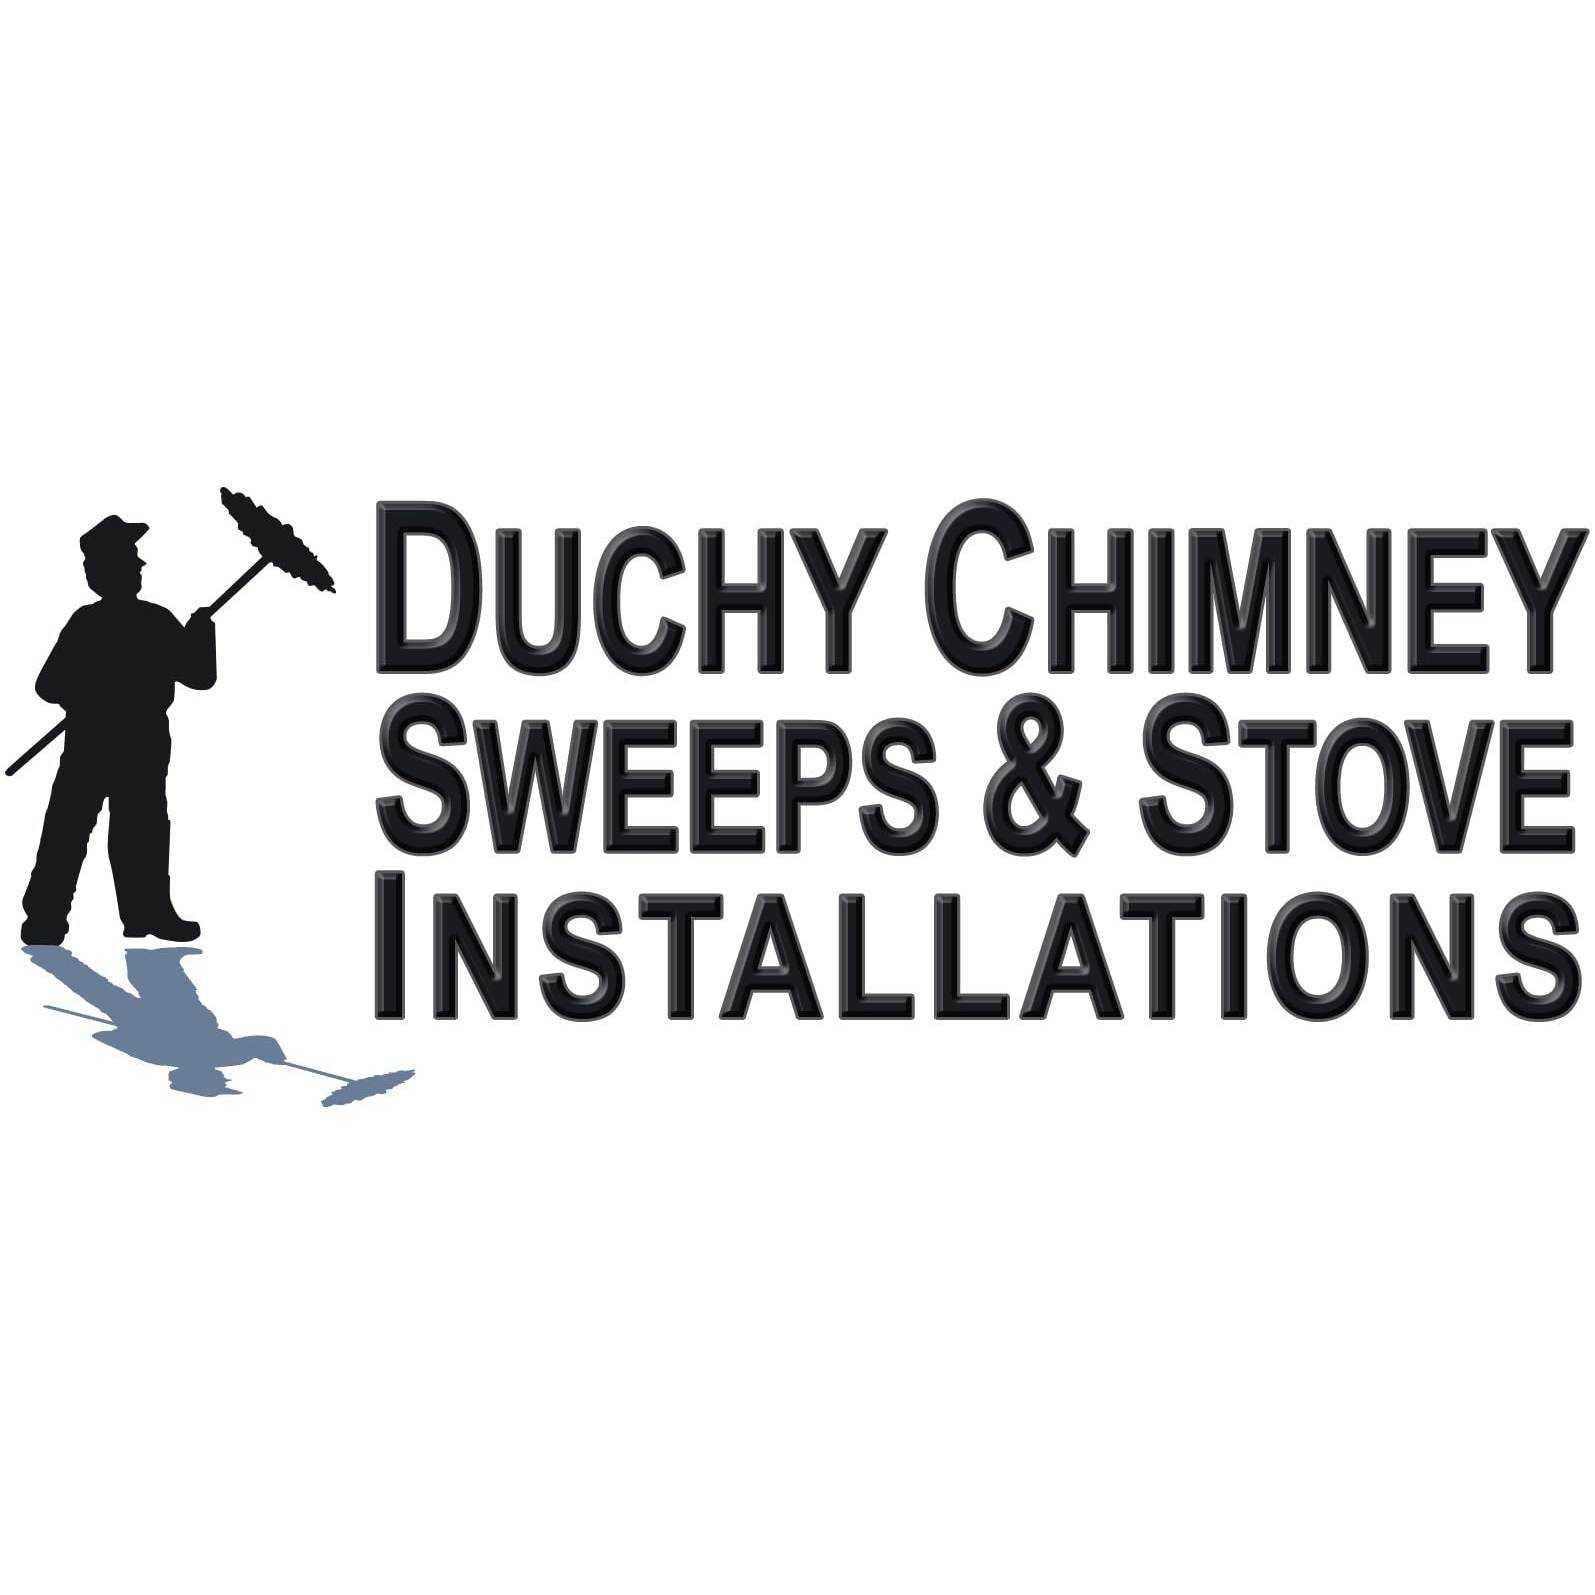 Duchy Chimney Sweep & Stove Installation Services - Bodmin, Cornwall PL30 5AR - 07885 863793 | ShowMeLocal.com